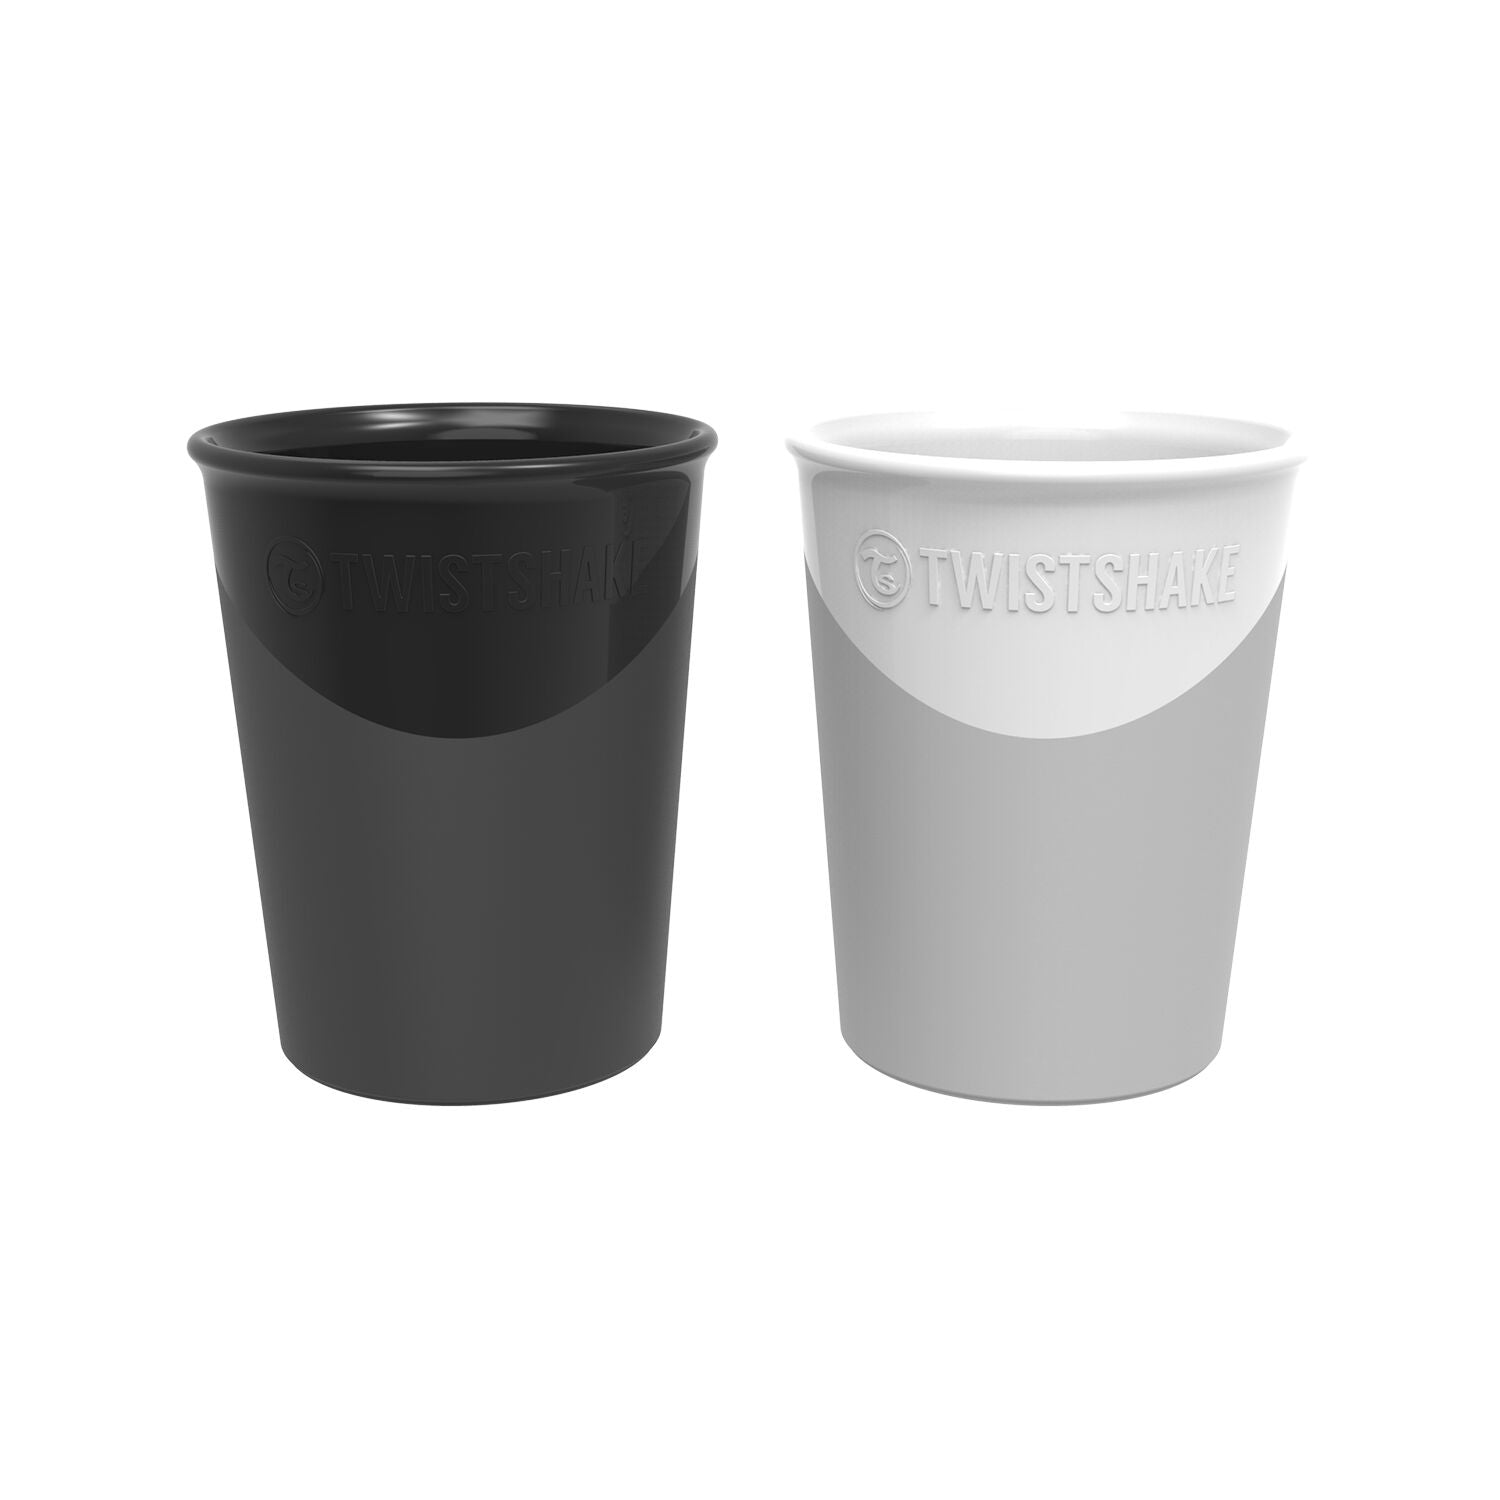 Twistshake Becher 2er Set - Black/White